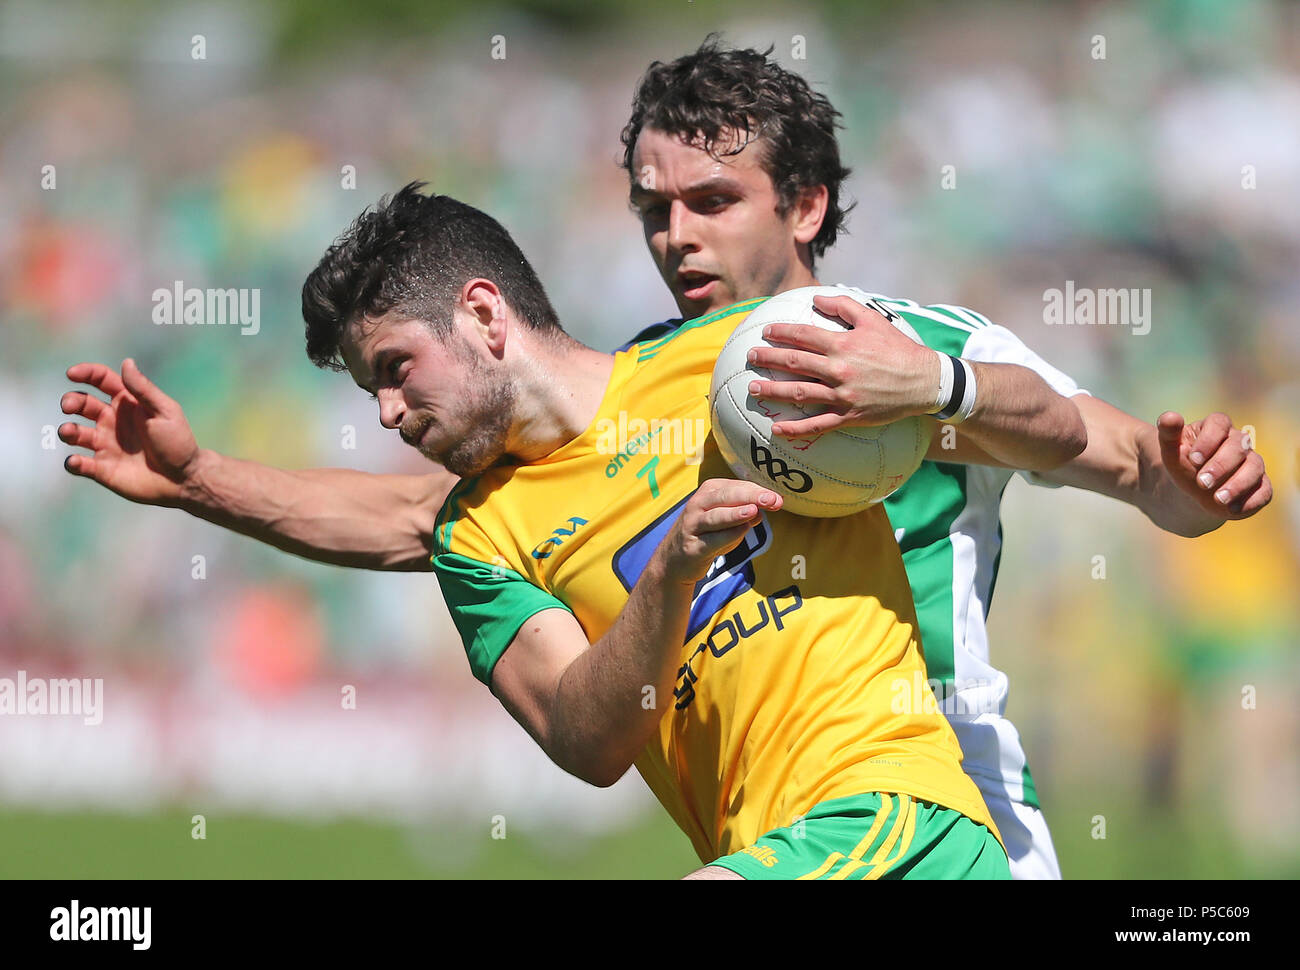 Fermanagh's Eamon McHugh and Donegal's Ryan McHugh during the GAA Ulster Final in Clones, Co Monaghan, Ireland. - Stock Image